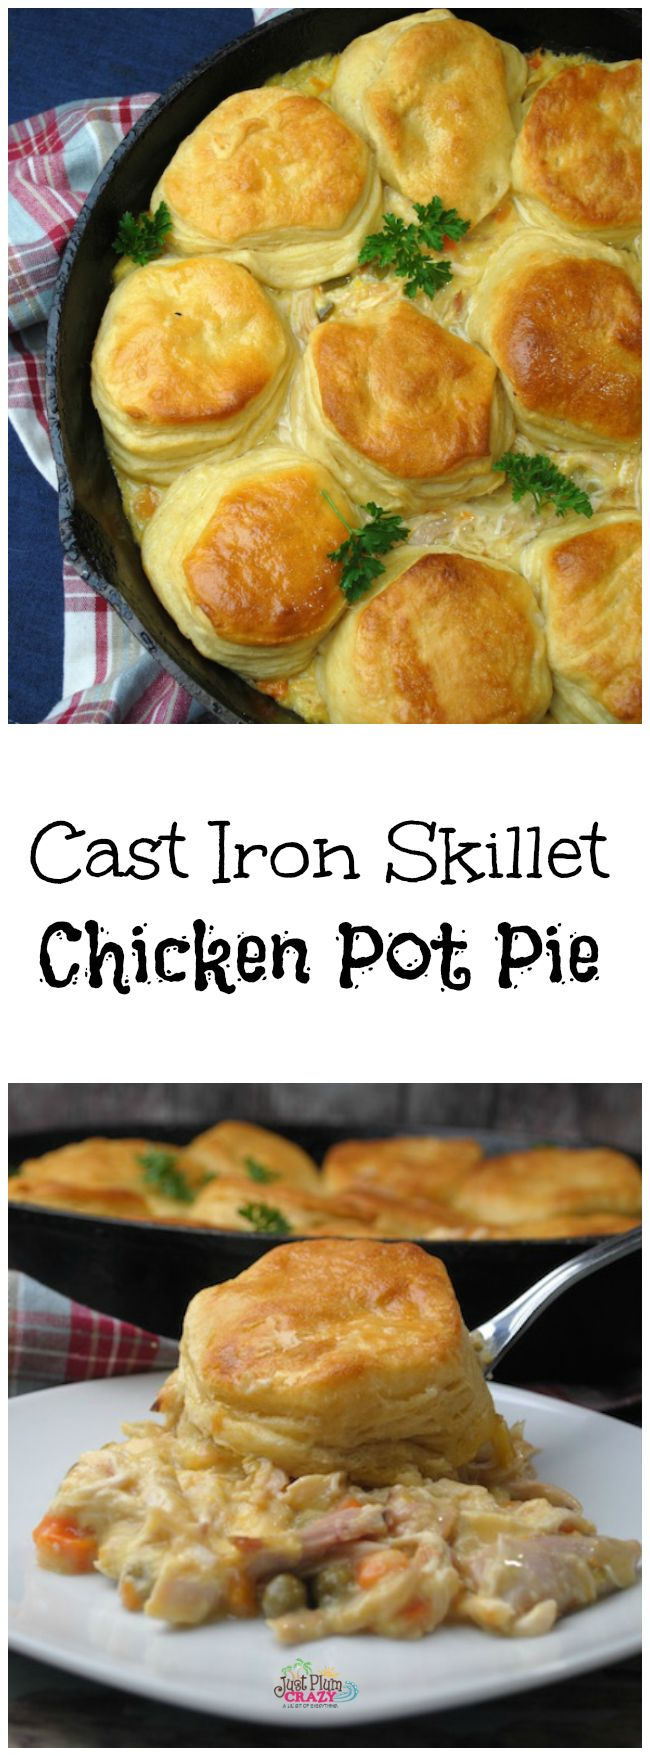 Cast Iron Skillet Chicken Pot Pie Recipe!! YES PLEASE!! There's nothing more comforting than some good old fashioned comfort food and this is so easy to make!!! (note... ingredients listed above aren't correct... ingredients: 1 rotisserie chicken, shredded. 1 can mixed vegetables. 1 can cream of chicken soup. Salt & pepper, to taste. 1 bunch fresh parsley, chopped. (optional) 1 container of refrigerator buttermilk biscuits!!!!b